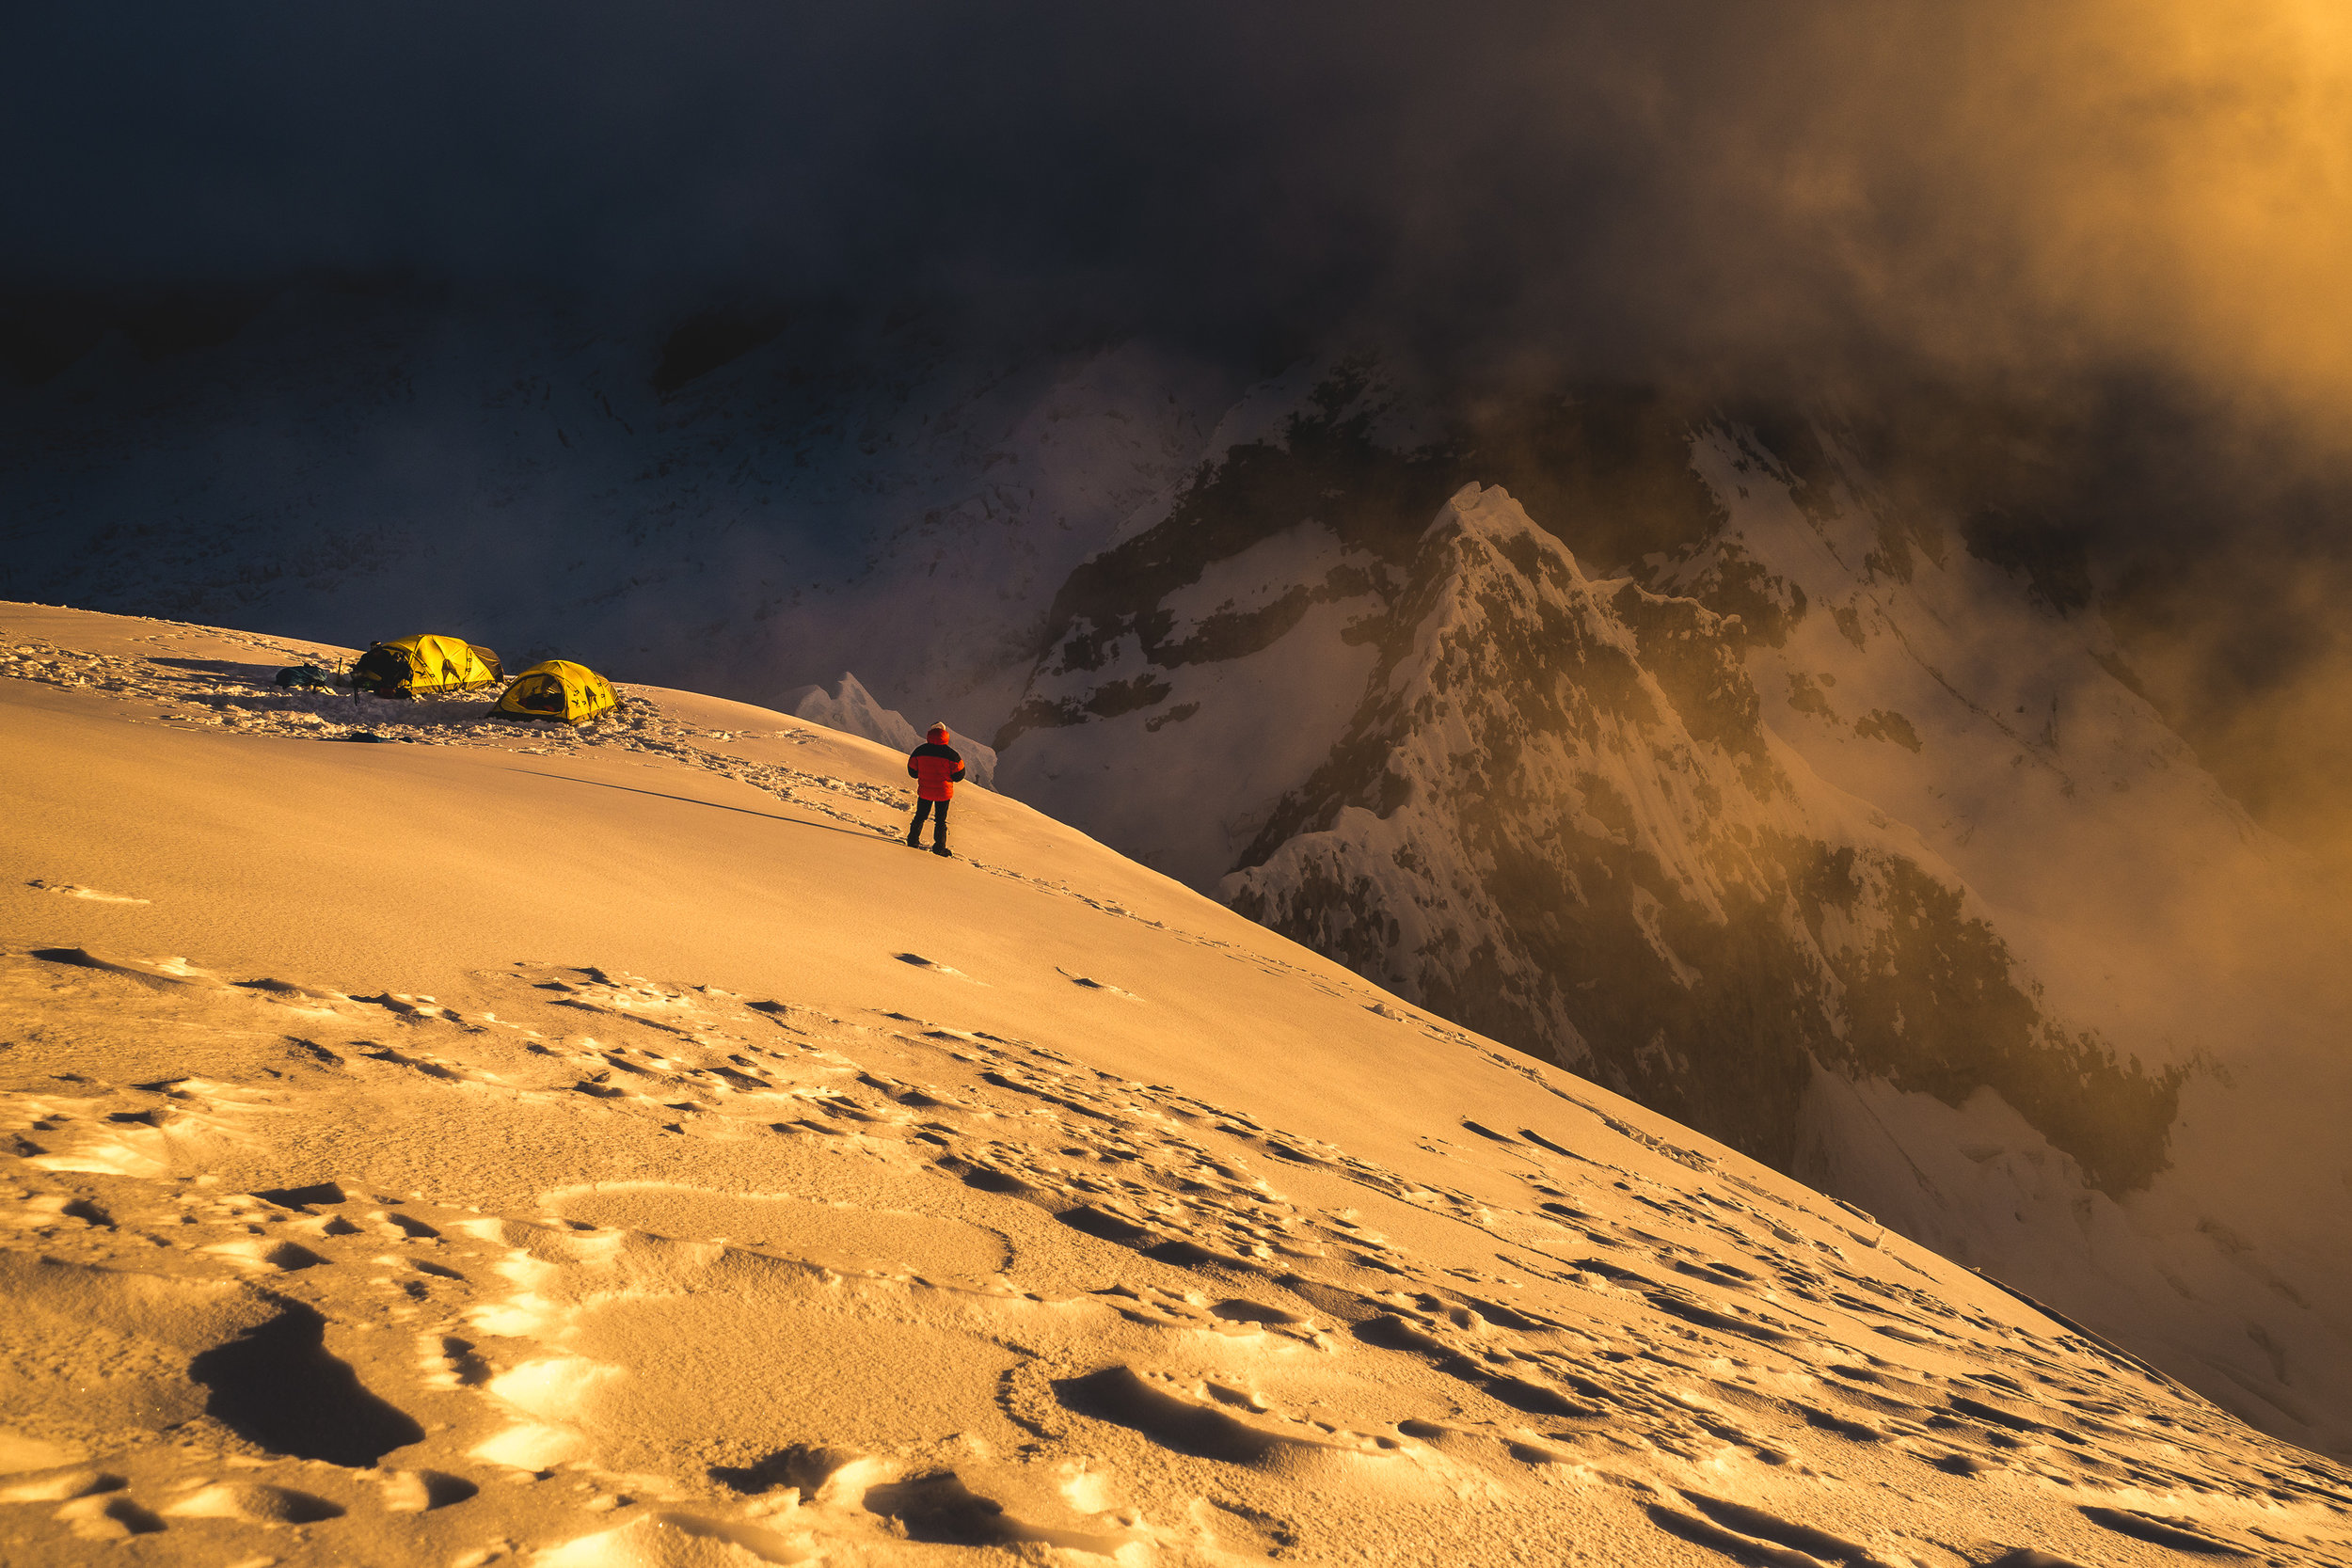 Sunset in High Camp on Chopicalqui at 5750m, Cordillera Blanca of Peru